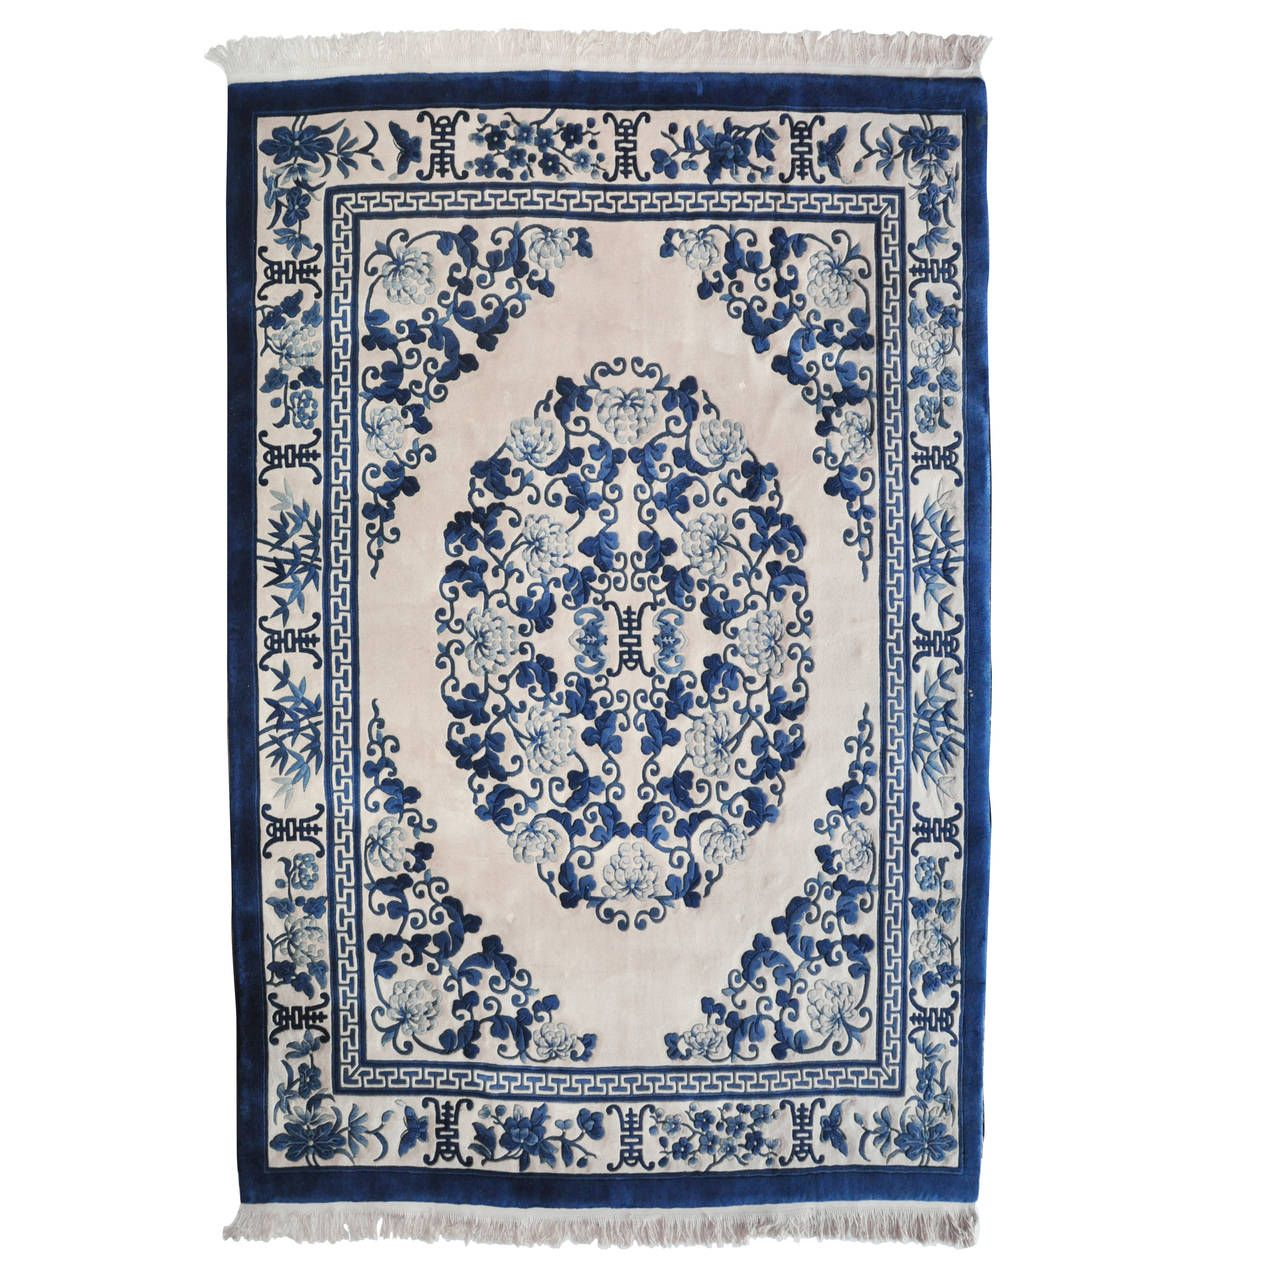 Chinese Blue And White Rug 1stdibs Com Blue And White Rug Chinoiserie Furniture Rugs On Carpet